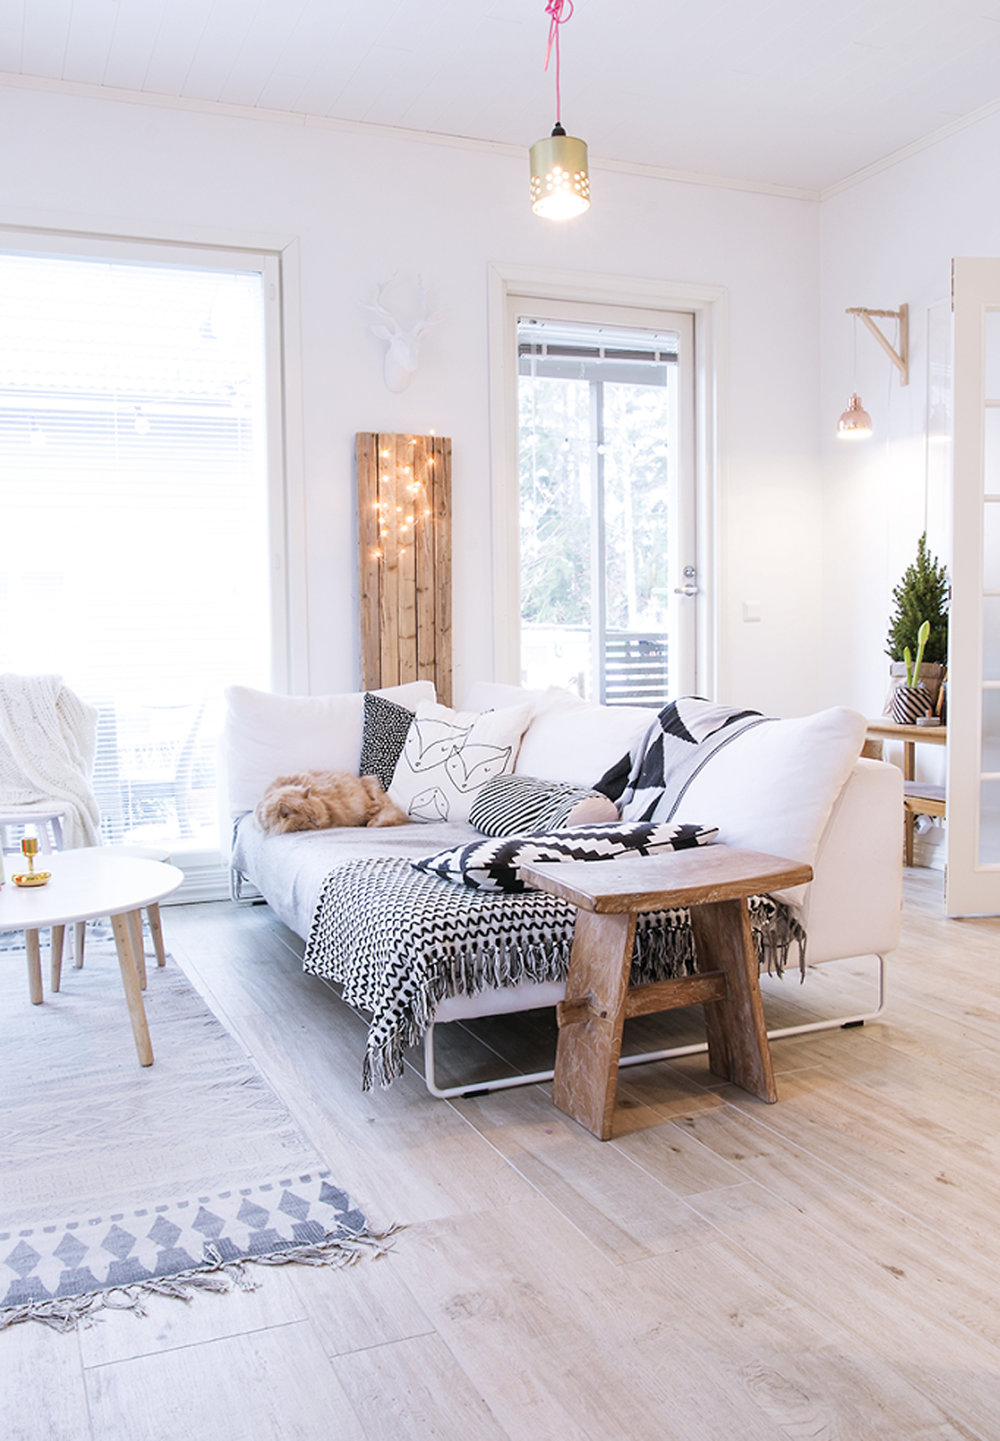 Captivating Home Tour: Natural Living In Finland